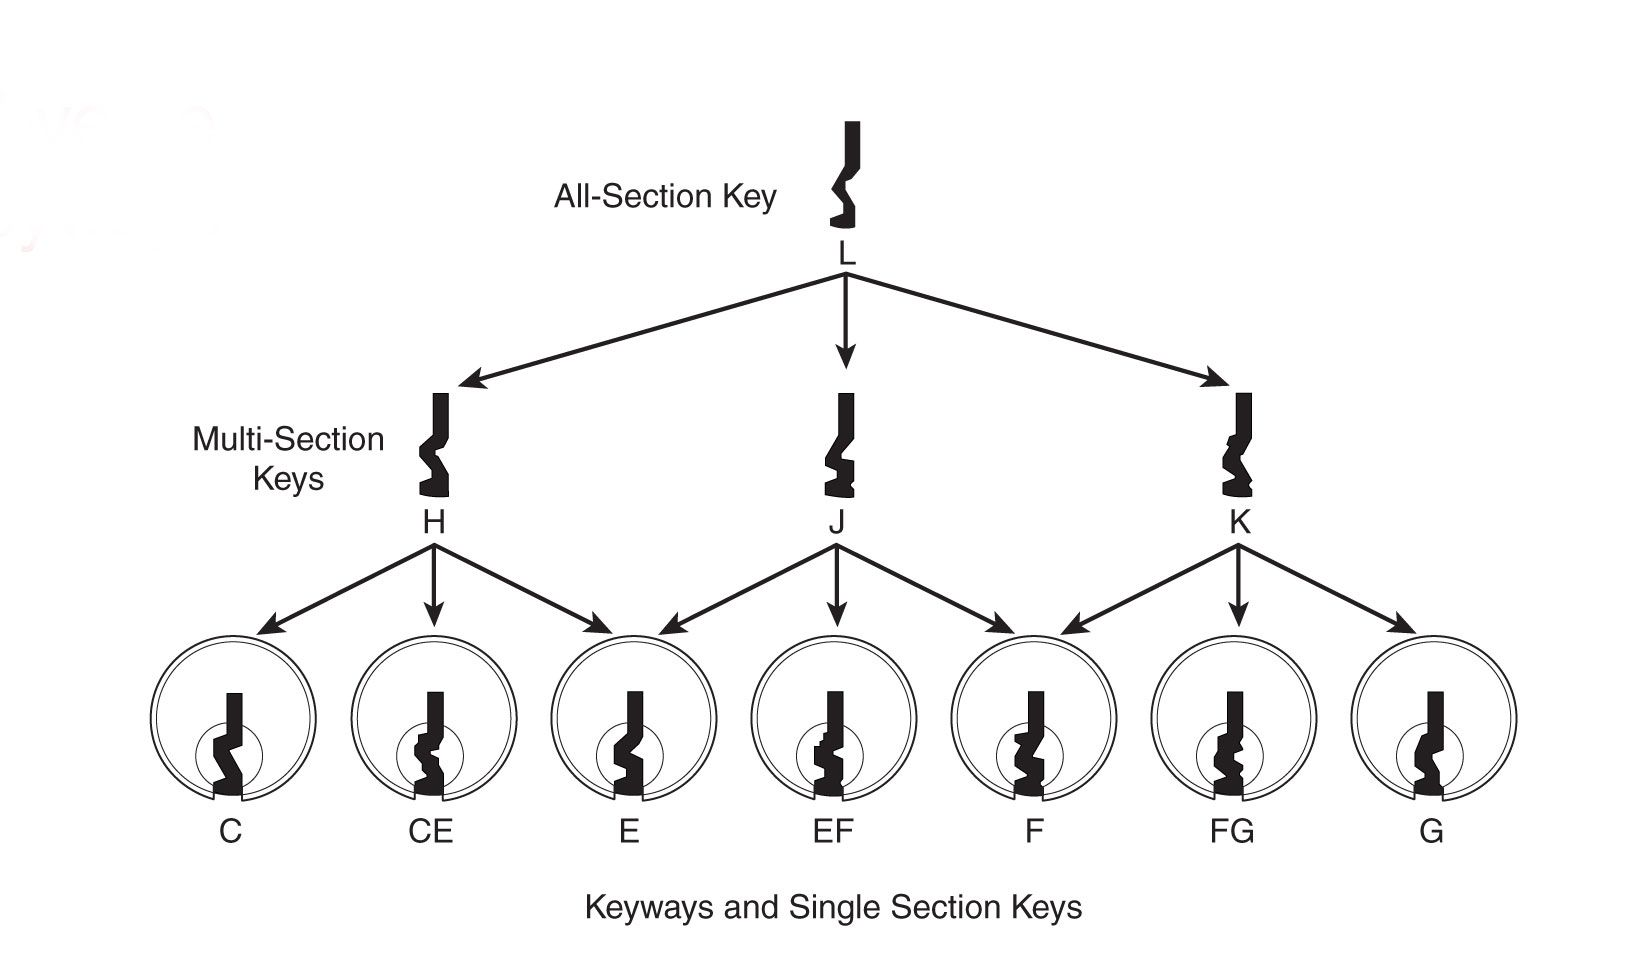 Schlage Classic Keyways And Single Section Keys Diagram